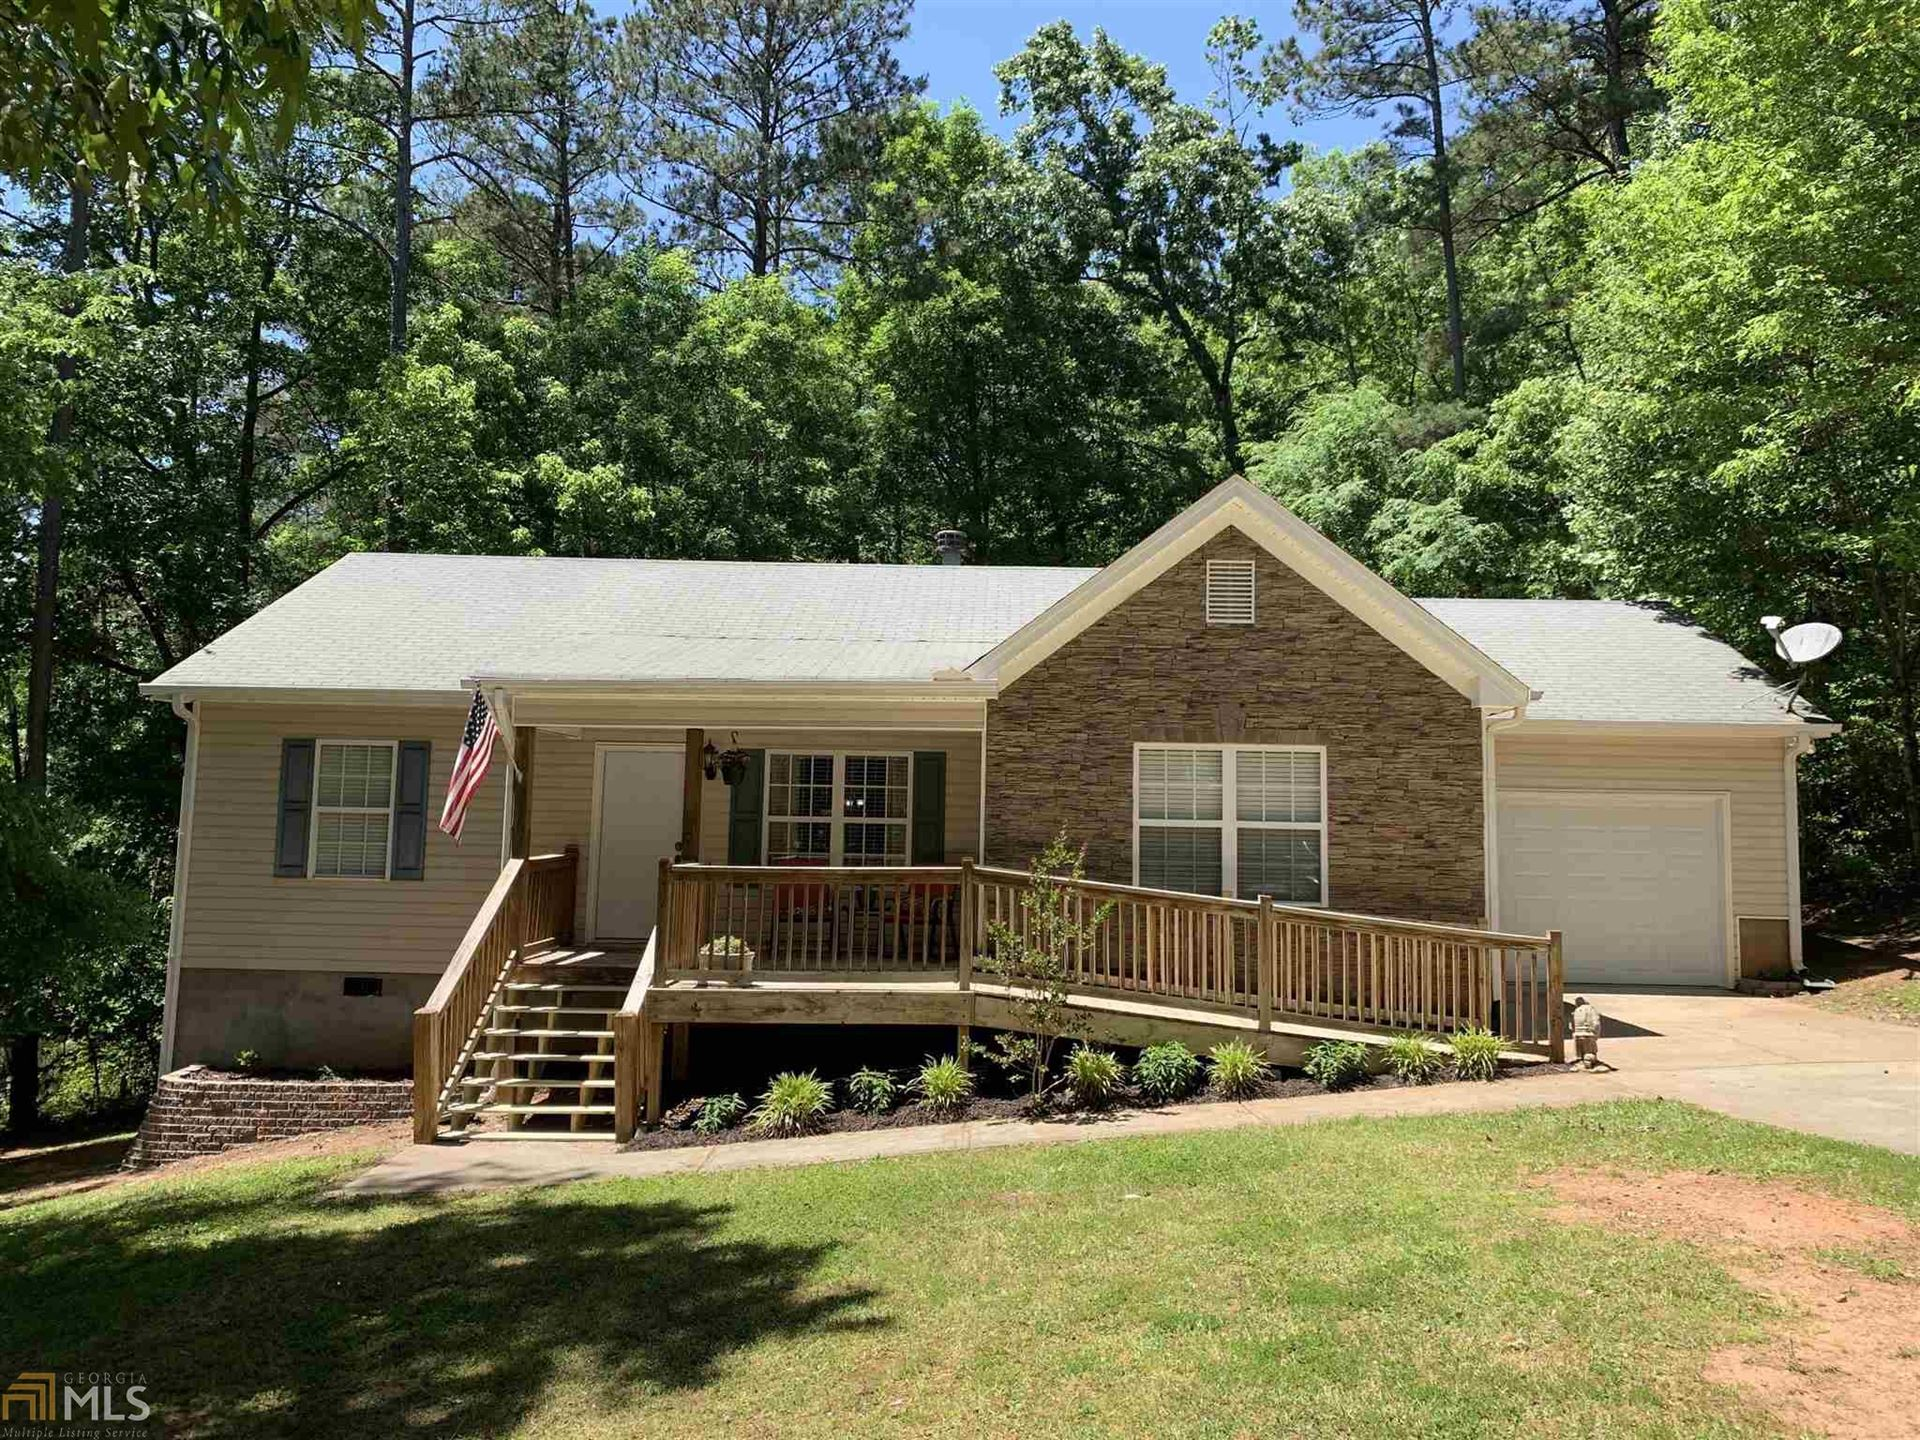 193 Oriole Cir, Monticello, GA 31064 - MLS#: 8976592